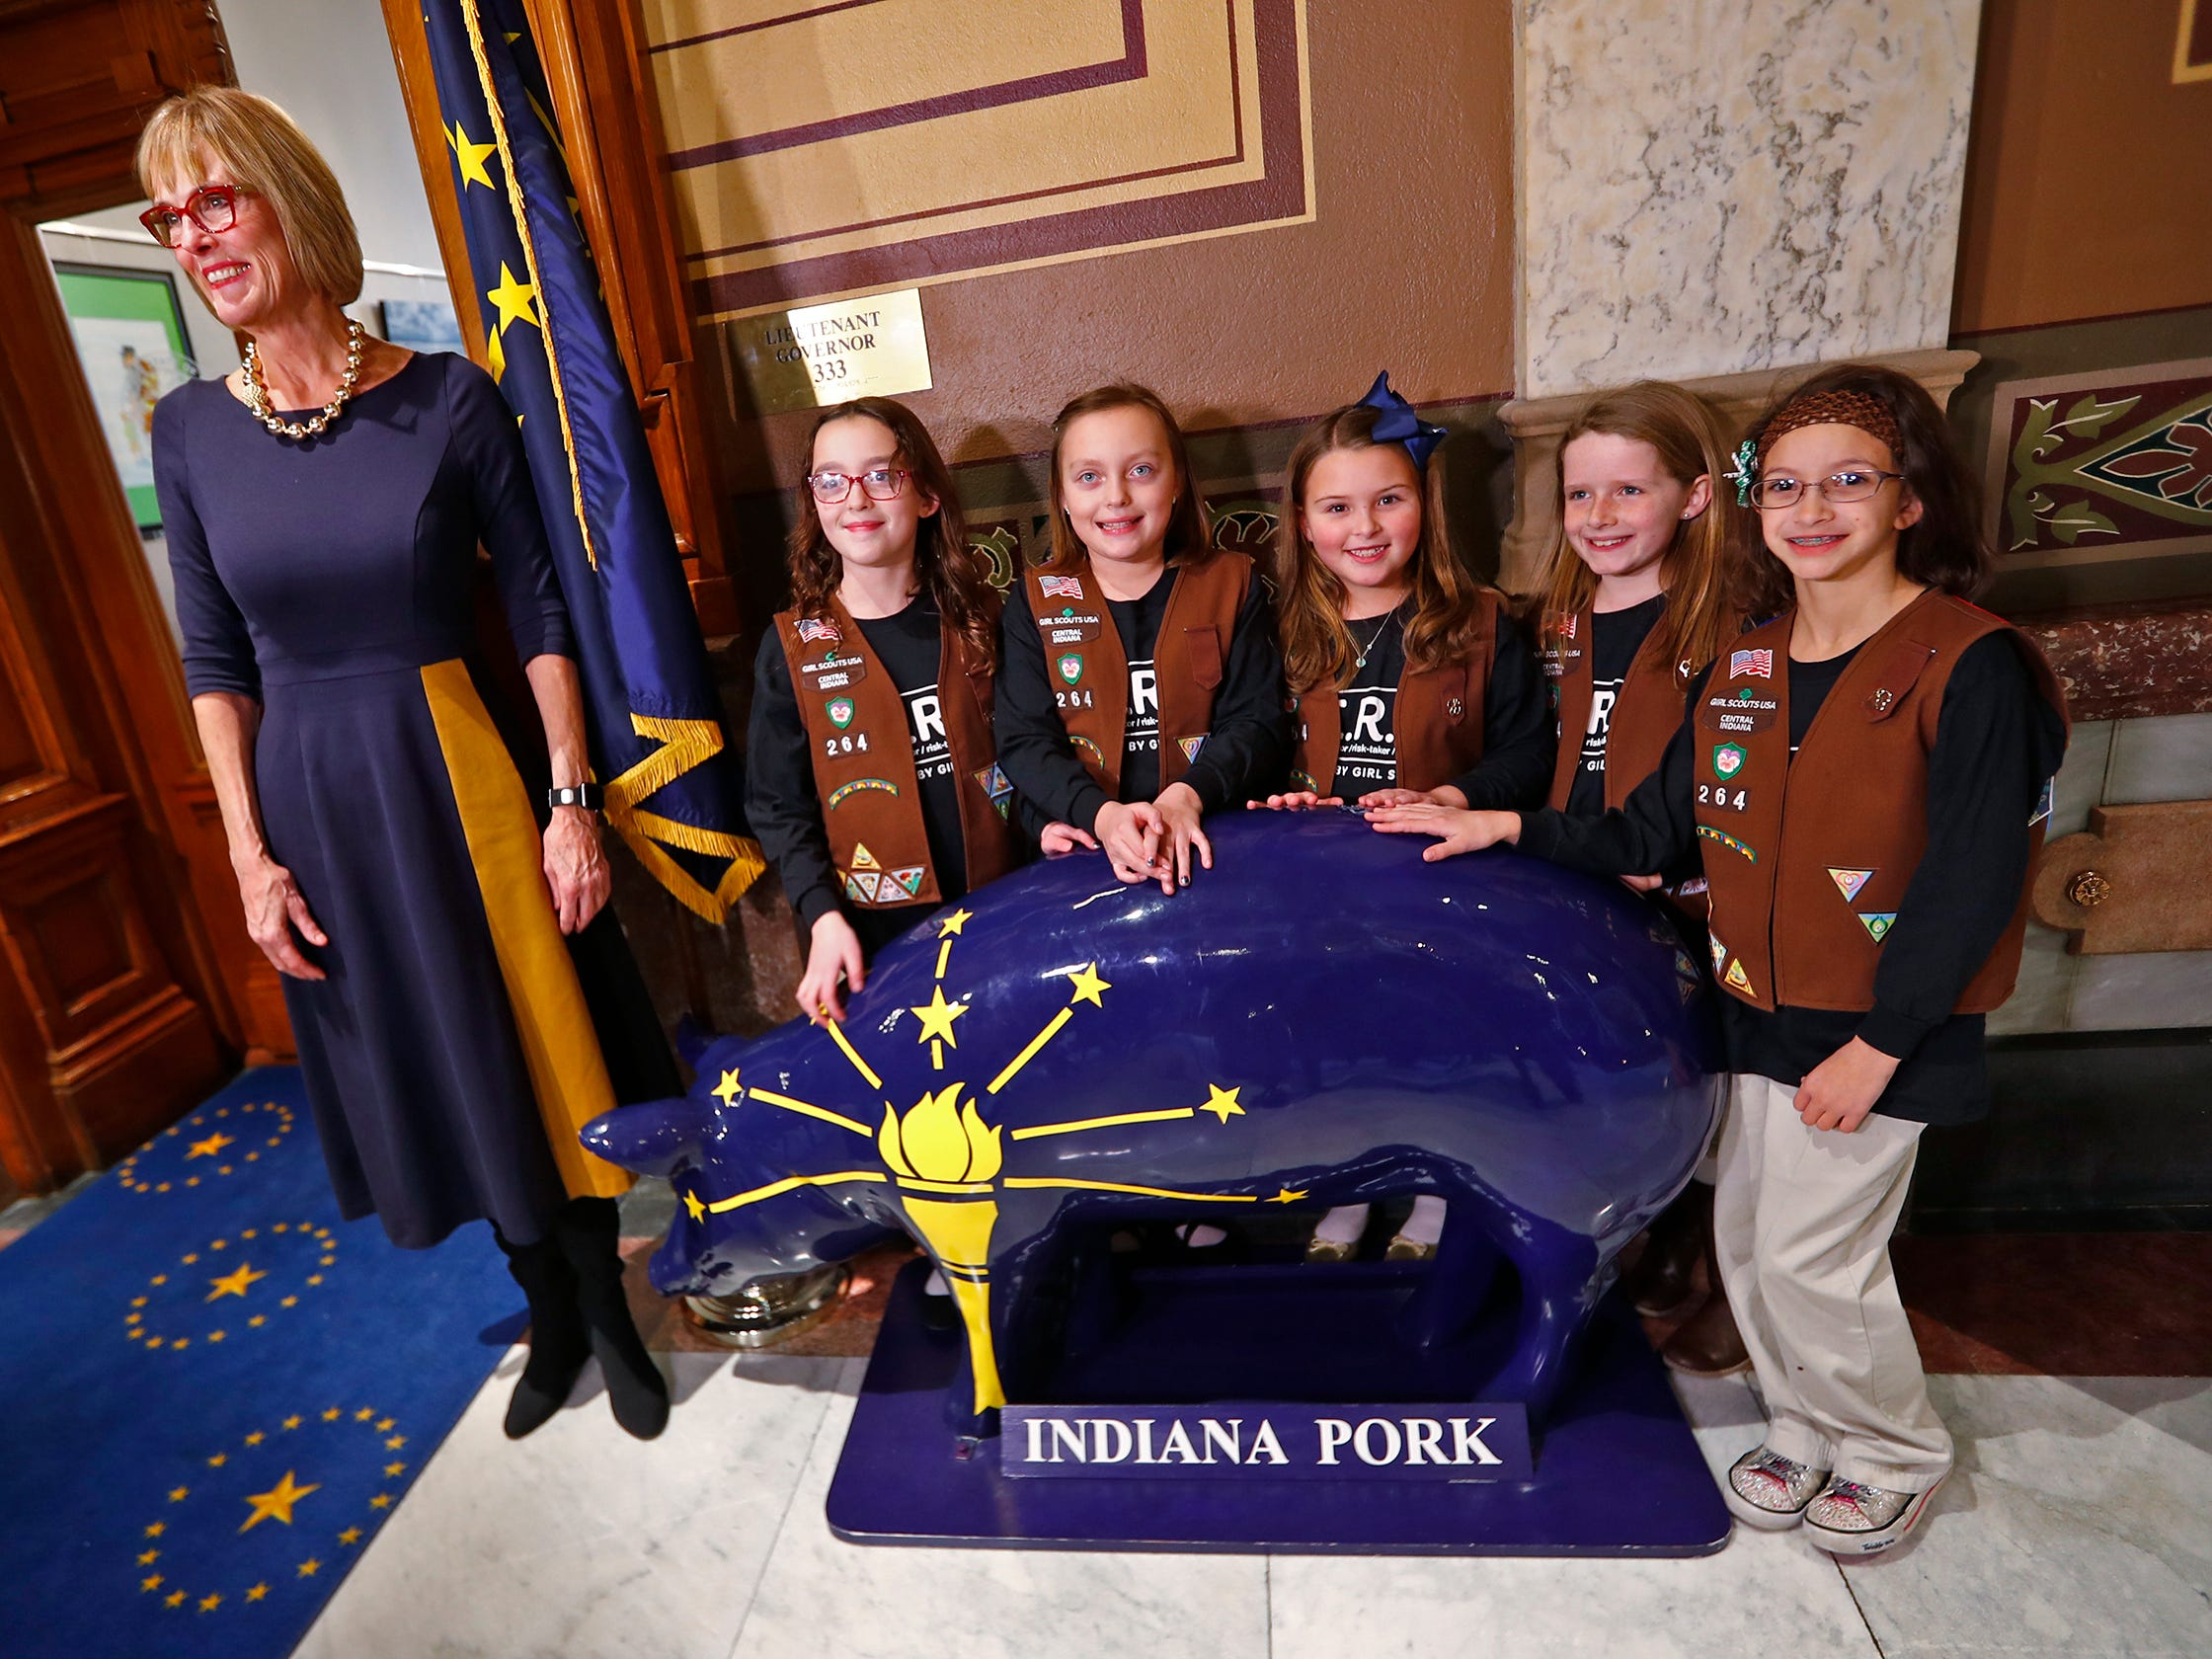 Lieutenant Governor Suzanne Crouch, left, poses with Brownies, from left, Josie Pardo, Colette Pardo, Katie Callahan, Vivian Bruno, Ivy Lara and the famous Indiana Pork statue outside her office at the Indiana Statehouse, before they gather to decorate her office tree for the holidays, Wednesday, Dec. 5, 2018.  They used ornaments created by Girl Scouts from across Central Indiana for the tree.